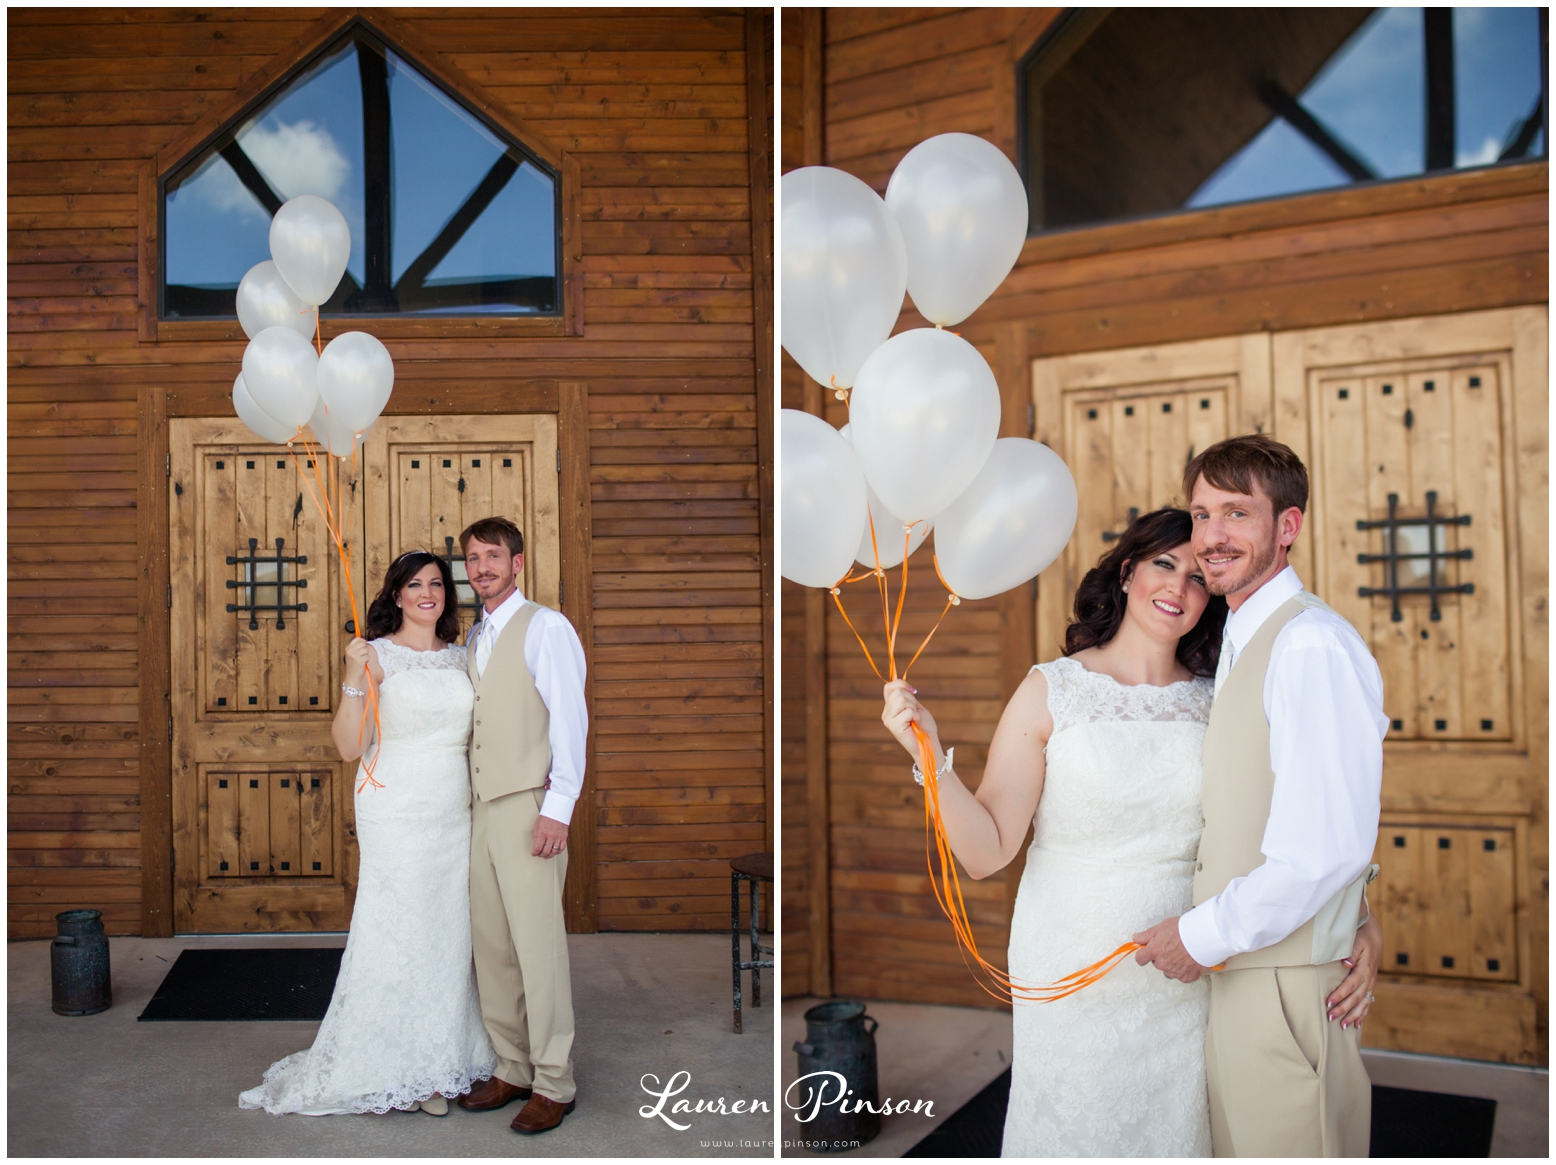 wichita-falls-coyote-ranch-resort-wedding-texas-photography-family-ceremony-balloons-rustic-lace_0335.jpg